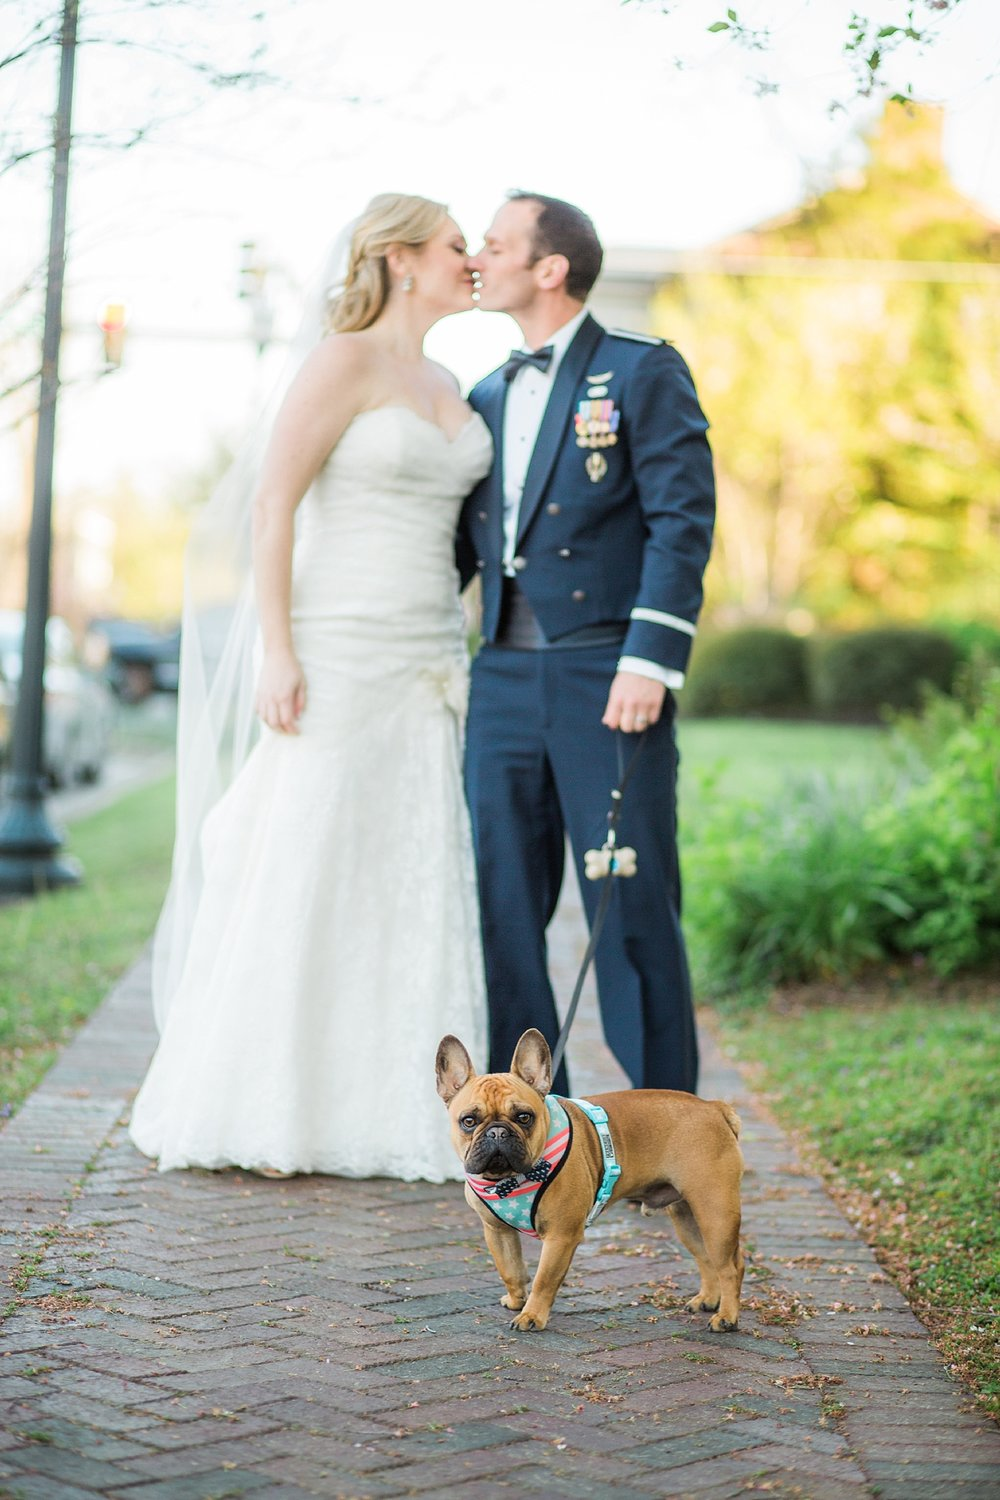 wedding-photography-nashville.jpg